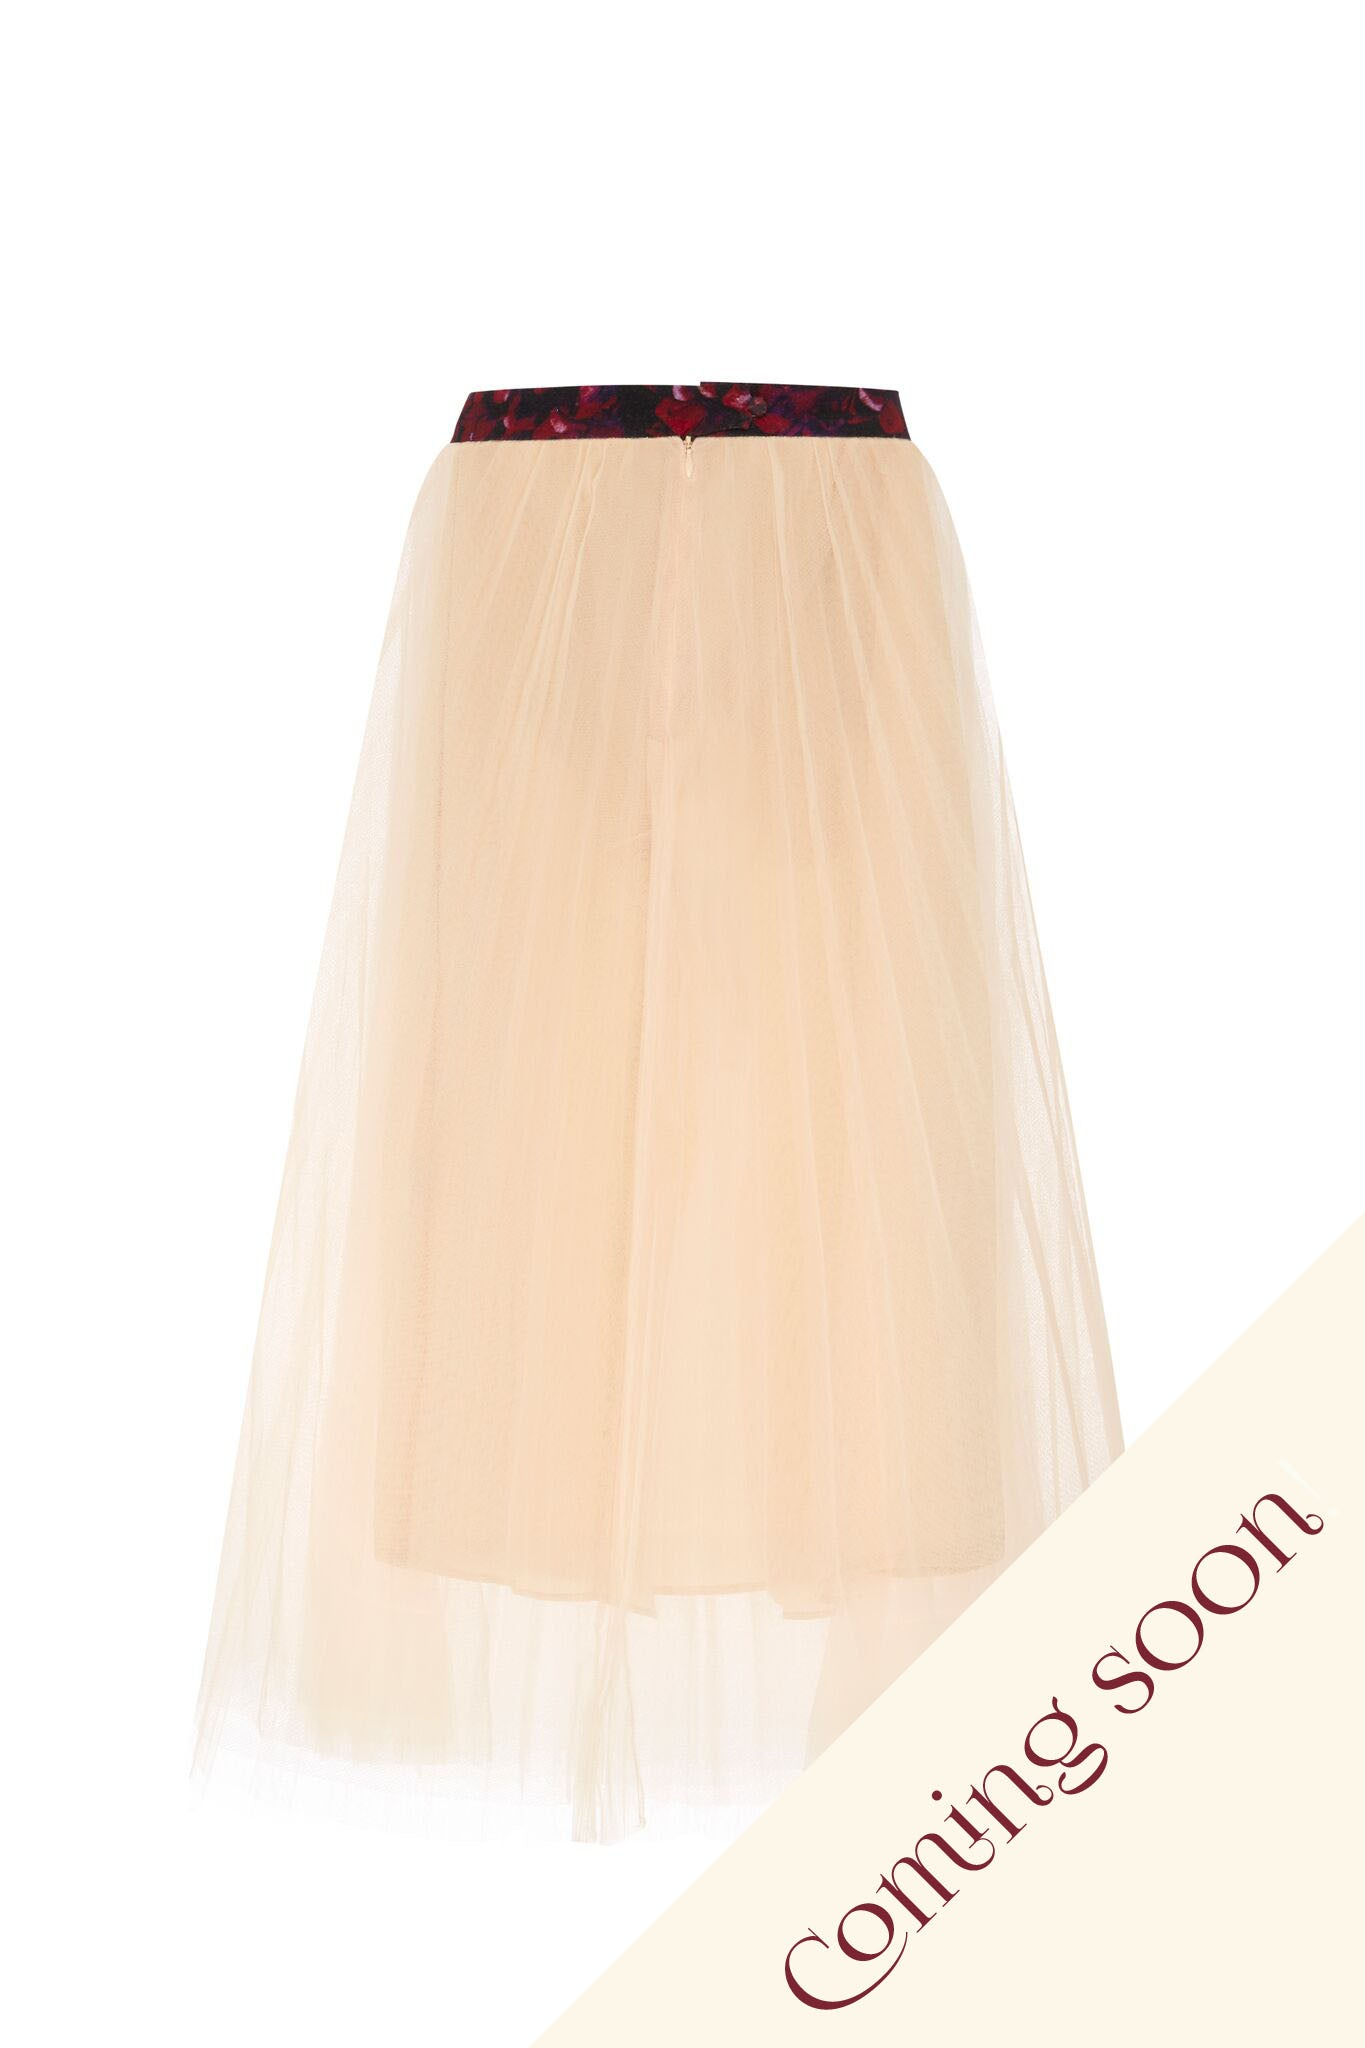 Momo peach fuzz pleated skirt